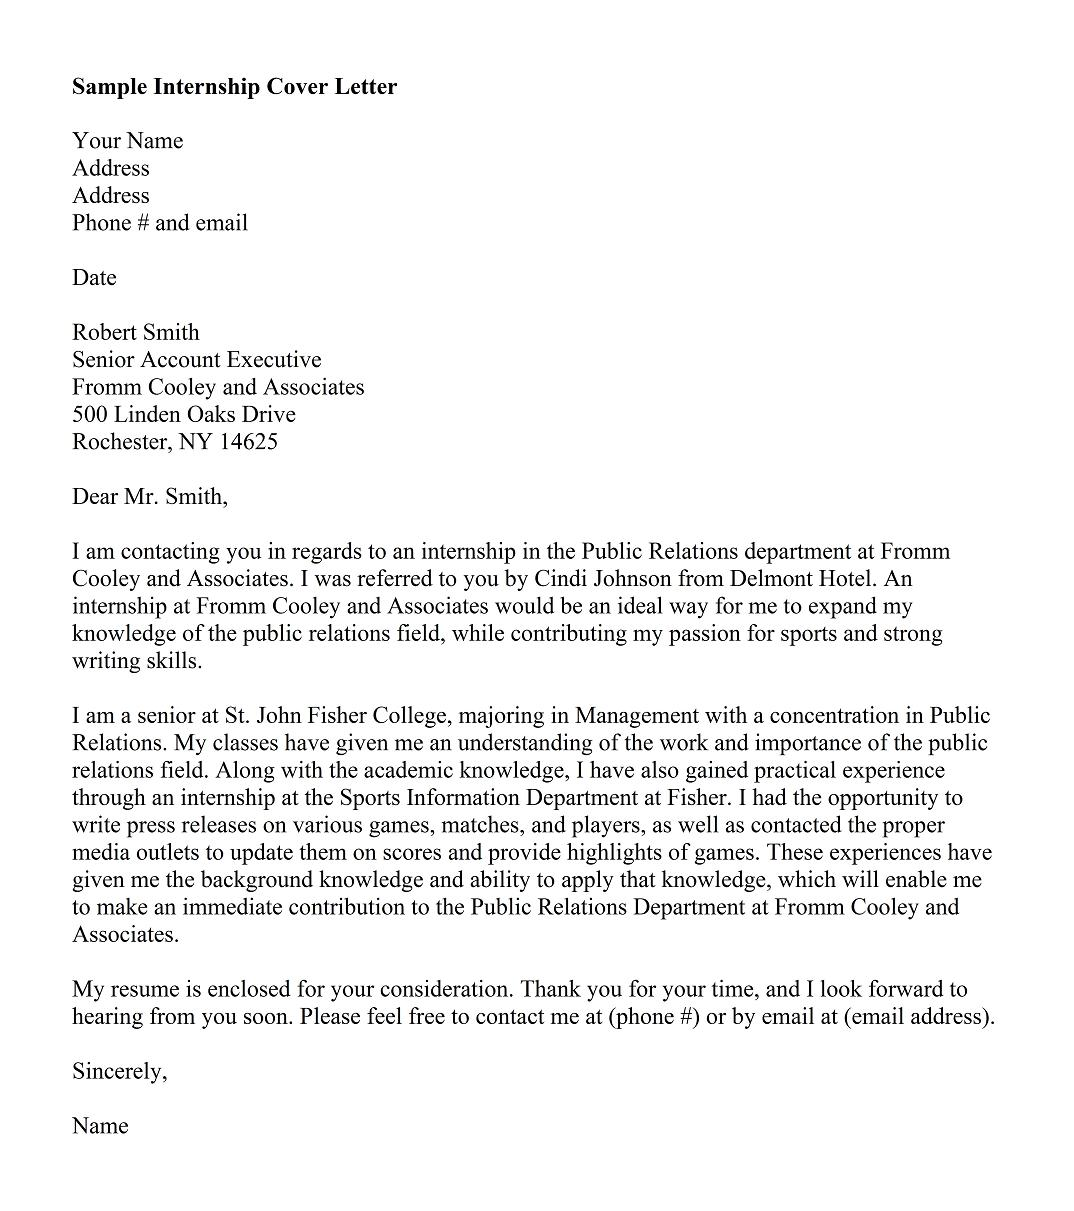 law firm internship cover letter sample